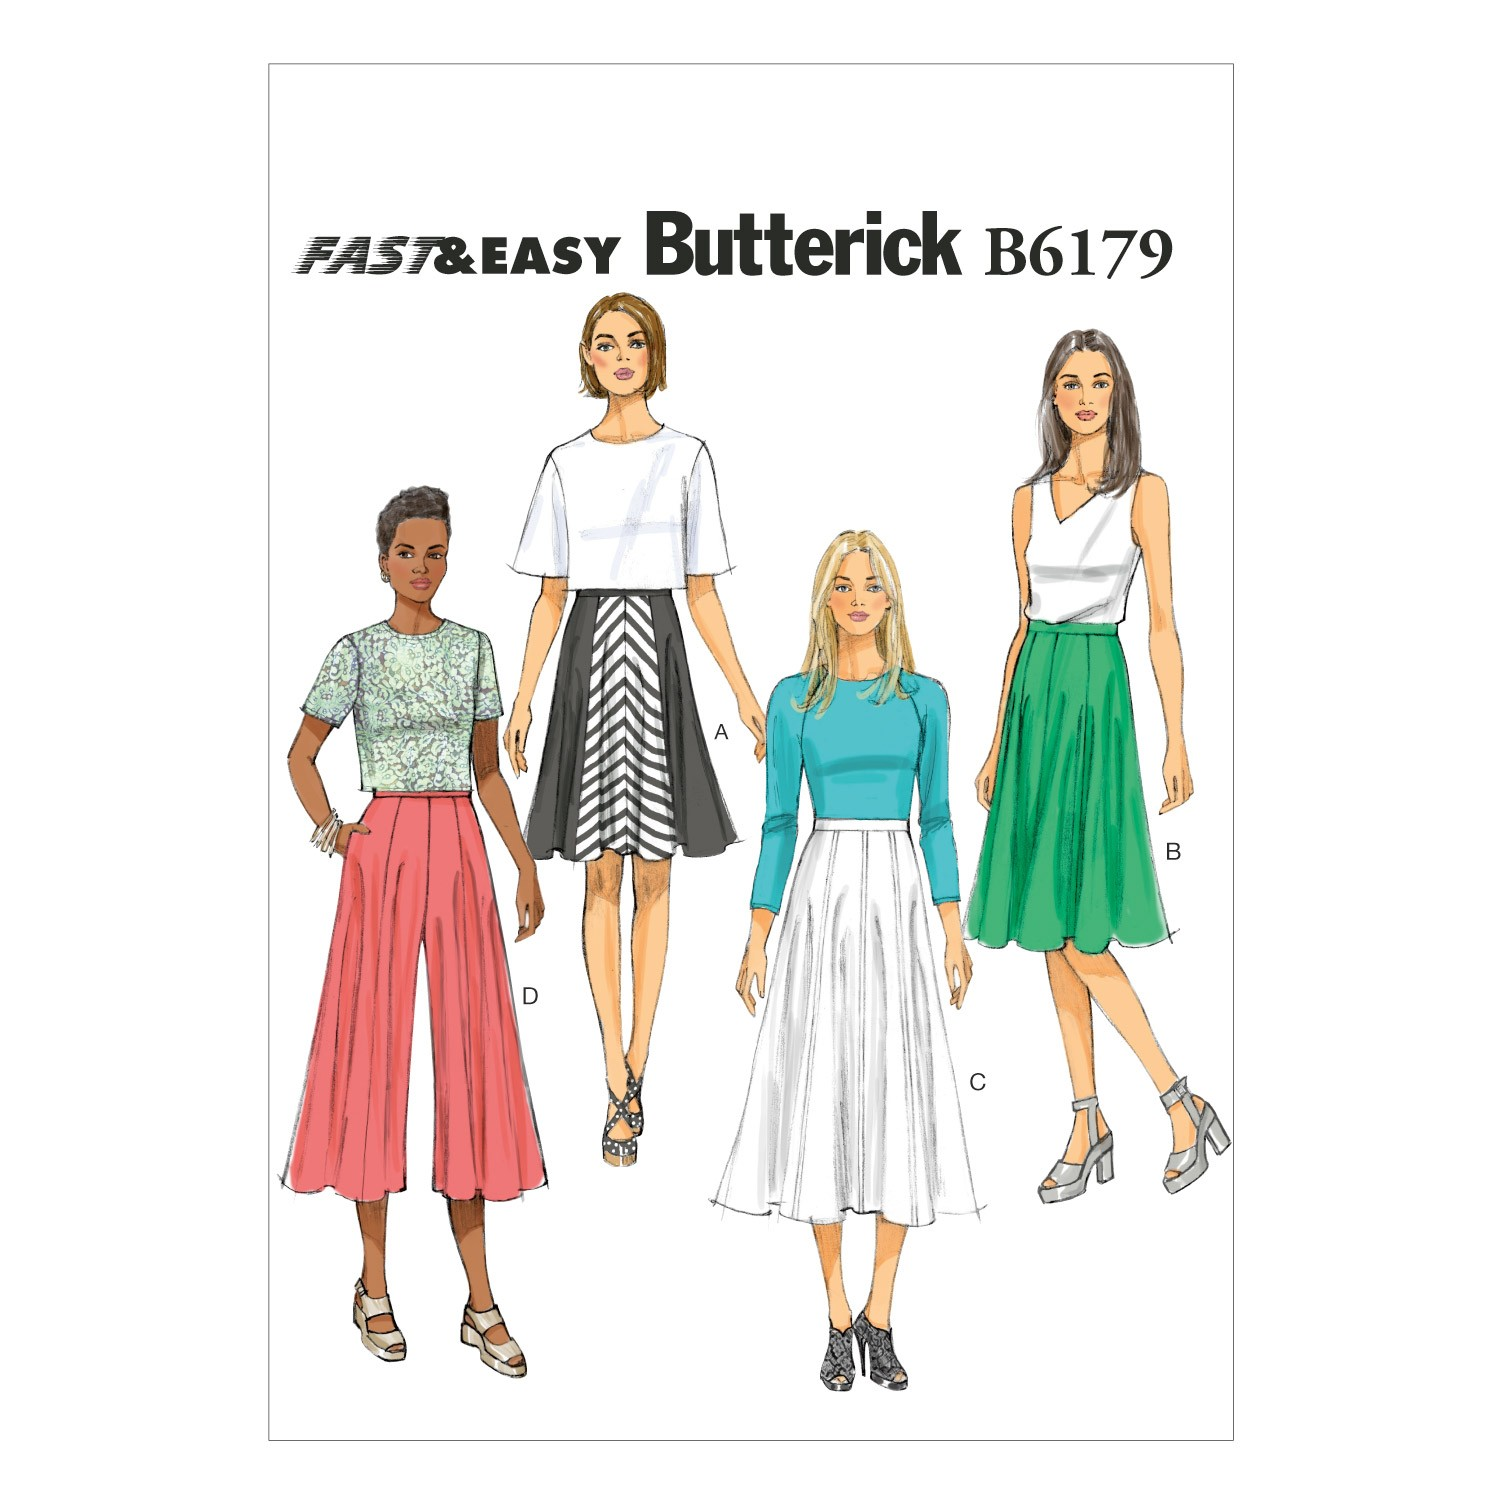 Butterick Sewing Pattern 6179 Misses' Culottes & Skirt